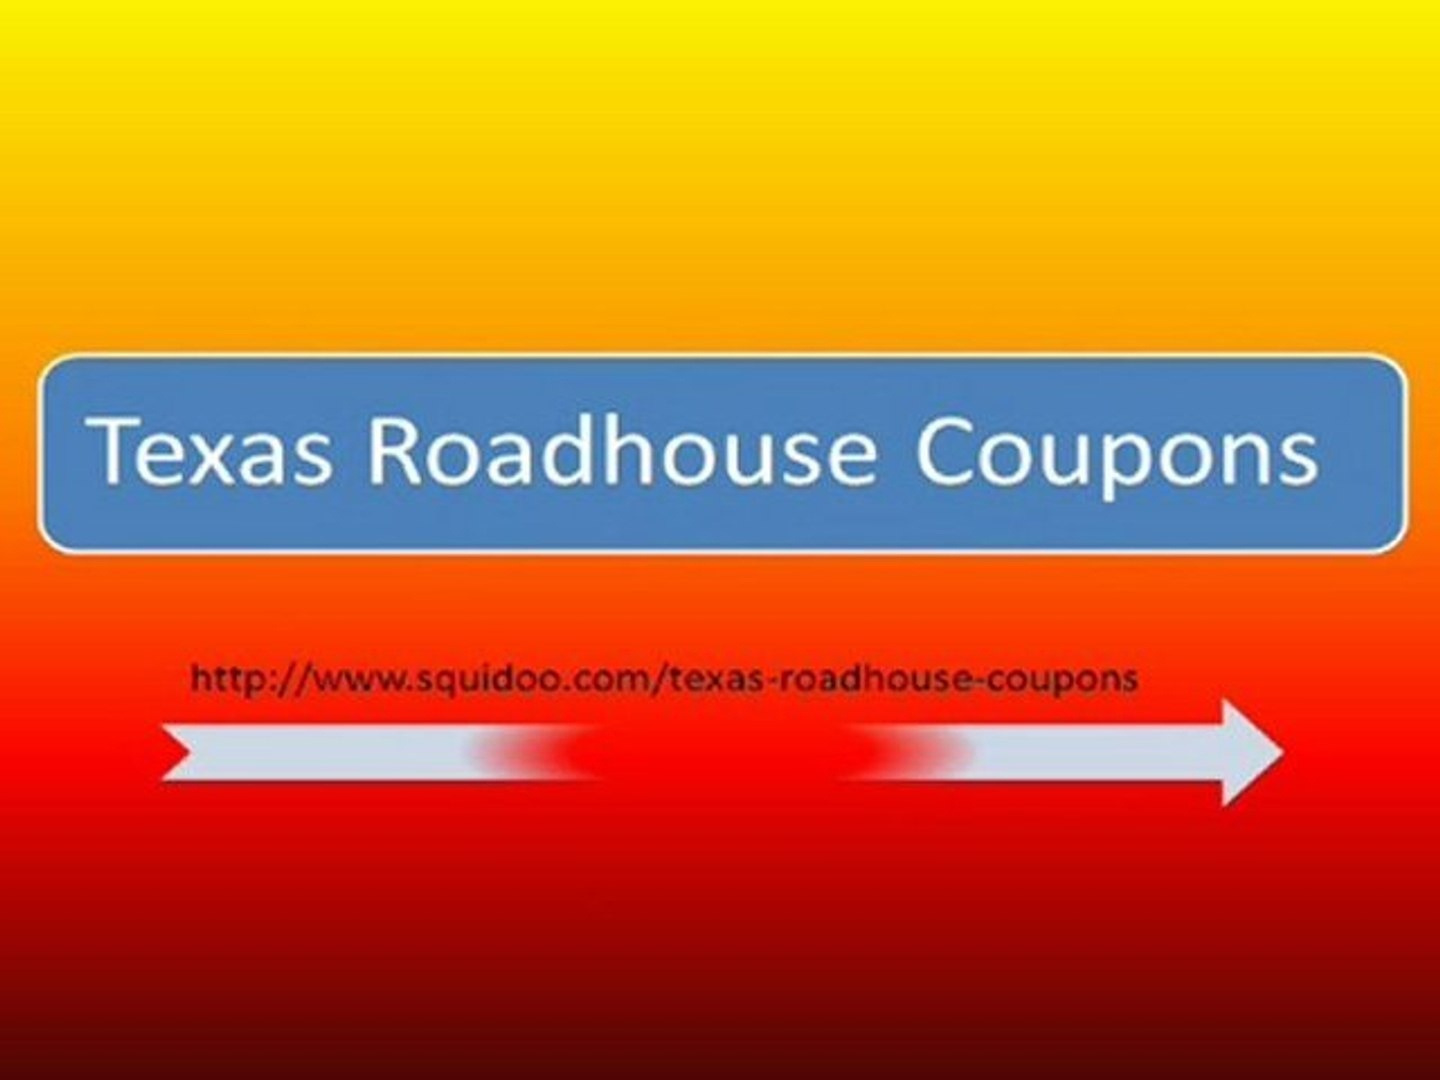 Printable Texas Roadhouse Coupons - Video Dailymotion - Texas Roadhouse Free Appetizer Printable Coupon 2015